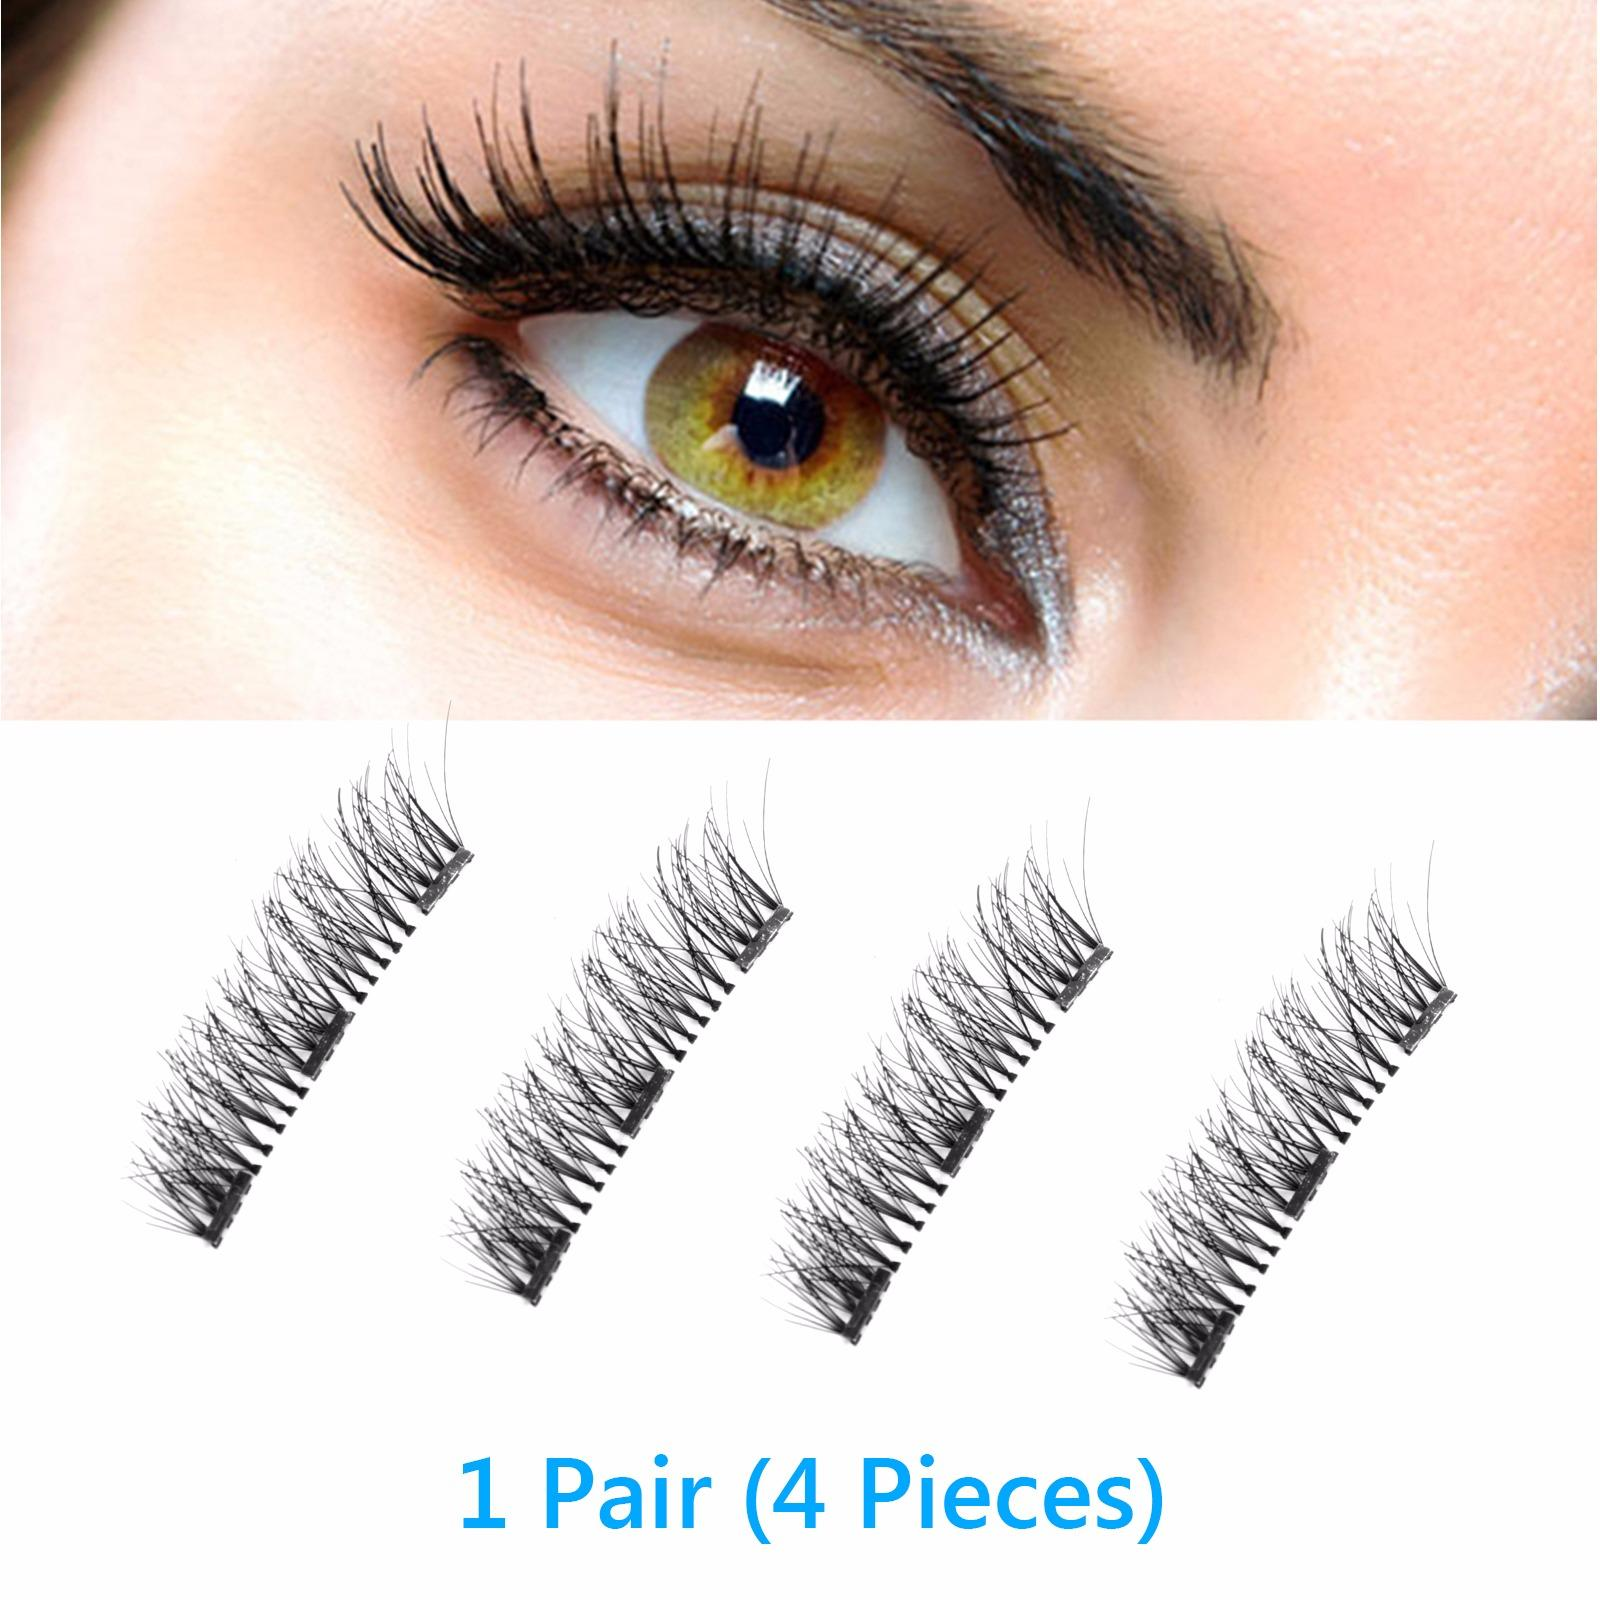 1e8c1cdb5c6 Magnetic EyeLashes False, 4Pcs/Pair Magnetic 3D Eyelashes Double Handmade  Natural False Long Eye